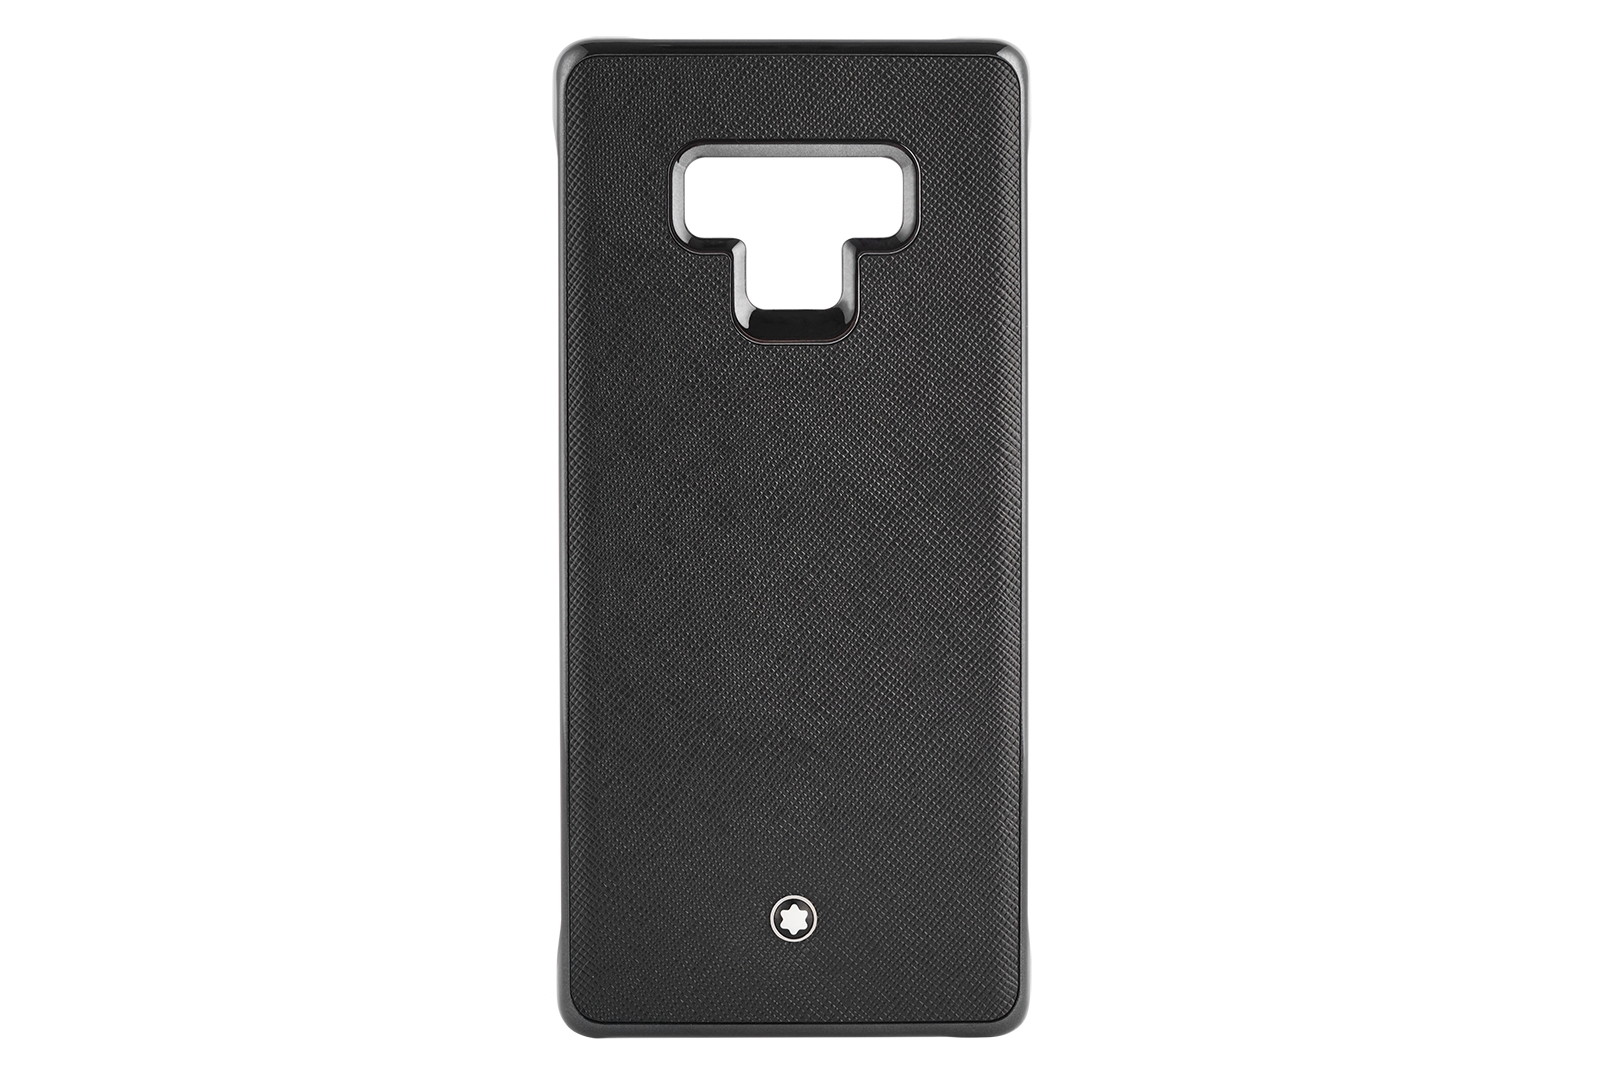 official photos 91ff2 a0a79 Montblanc Hard Case for Galaxy Note9, Black Mobile Accessories -  GP-N960MBCPAAA | Samsung US